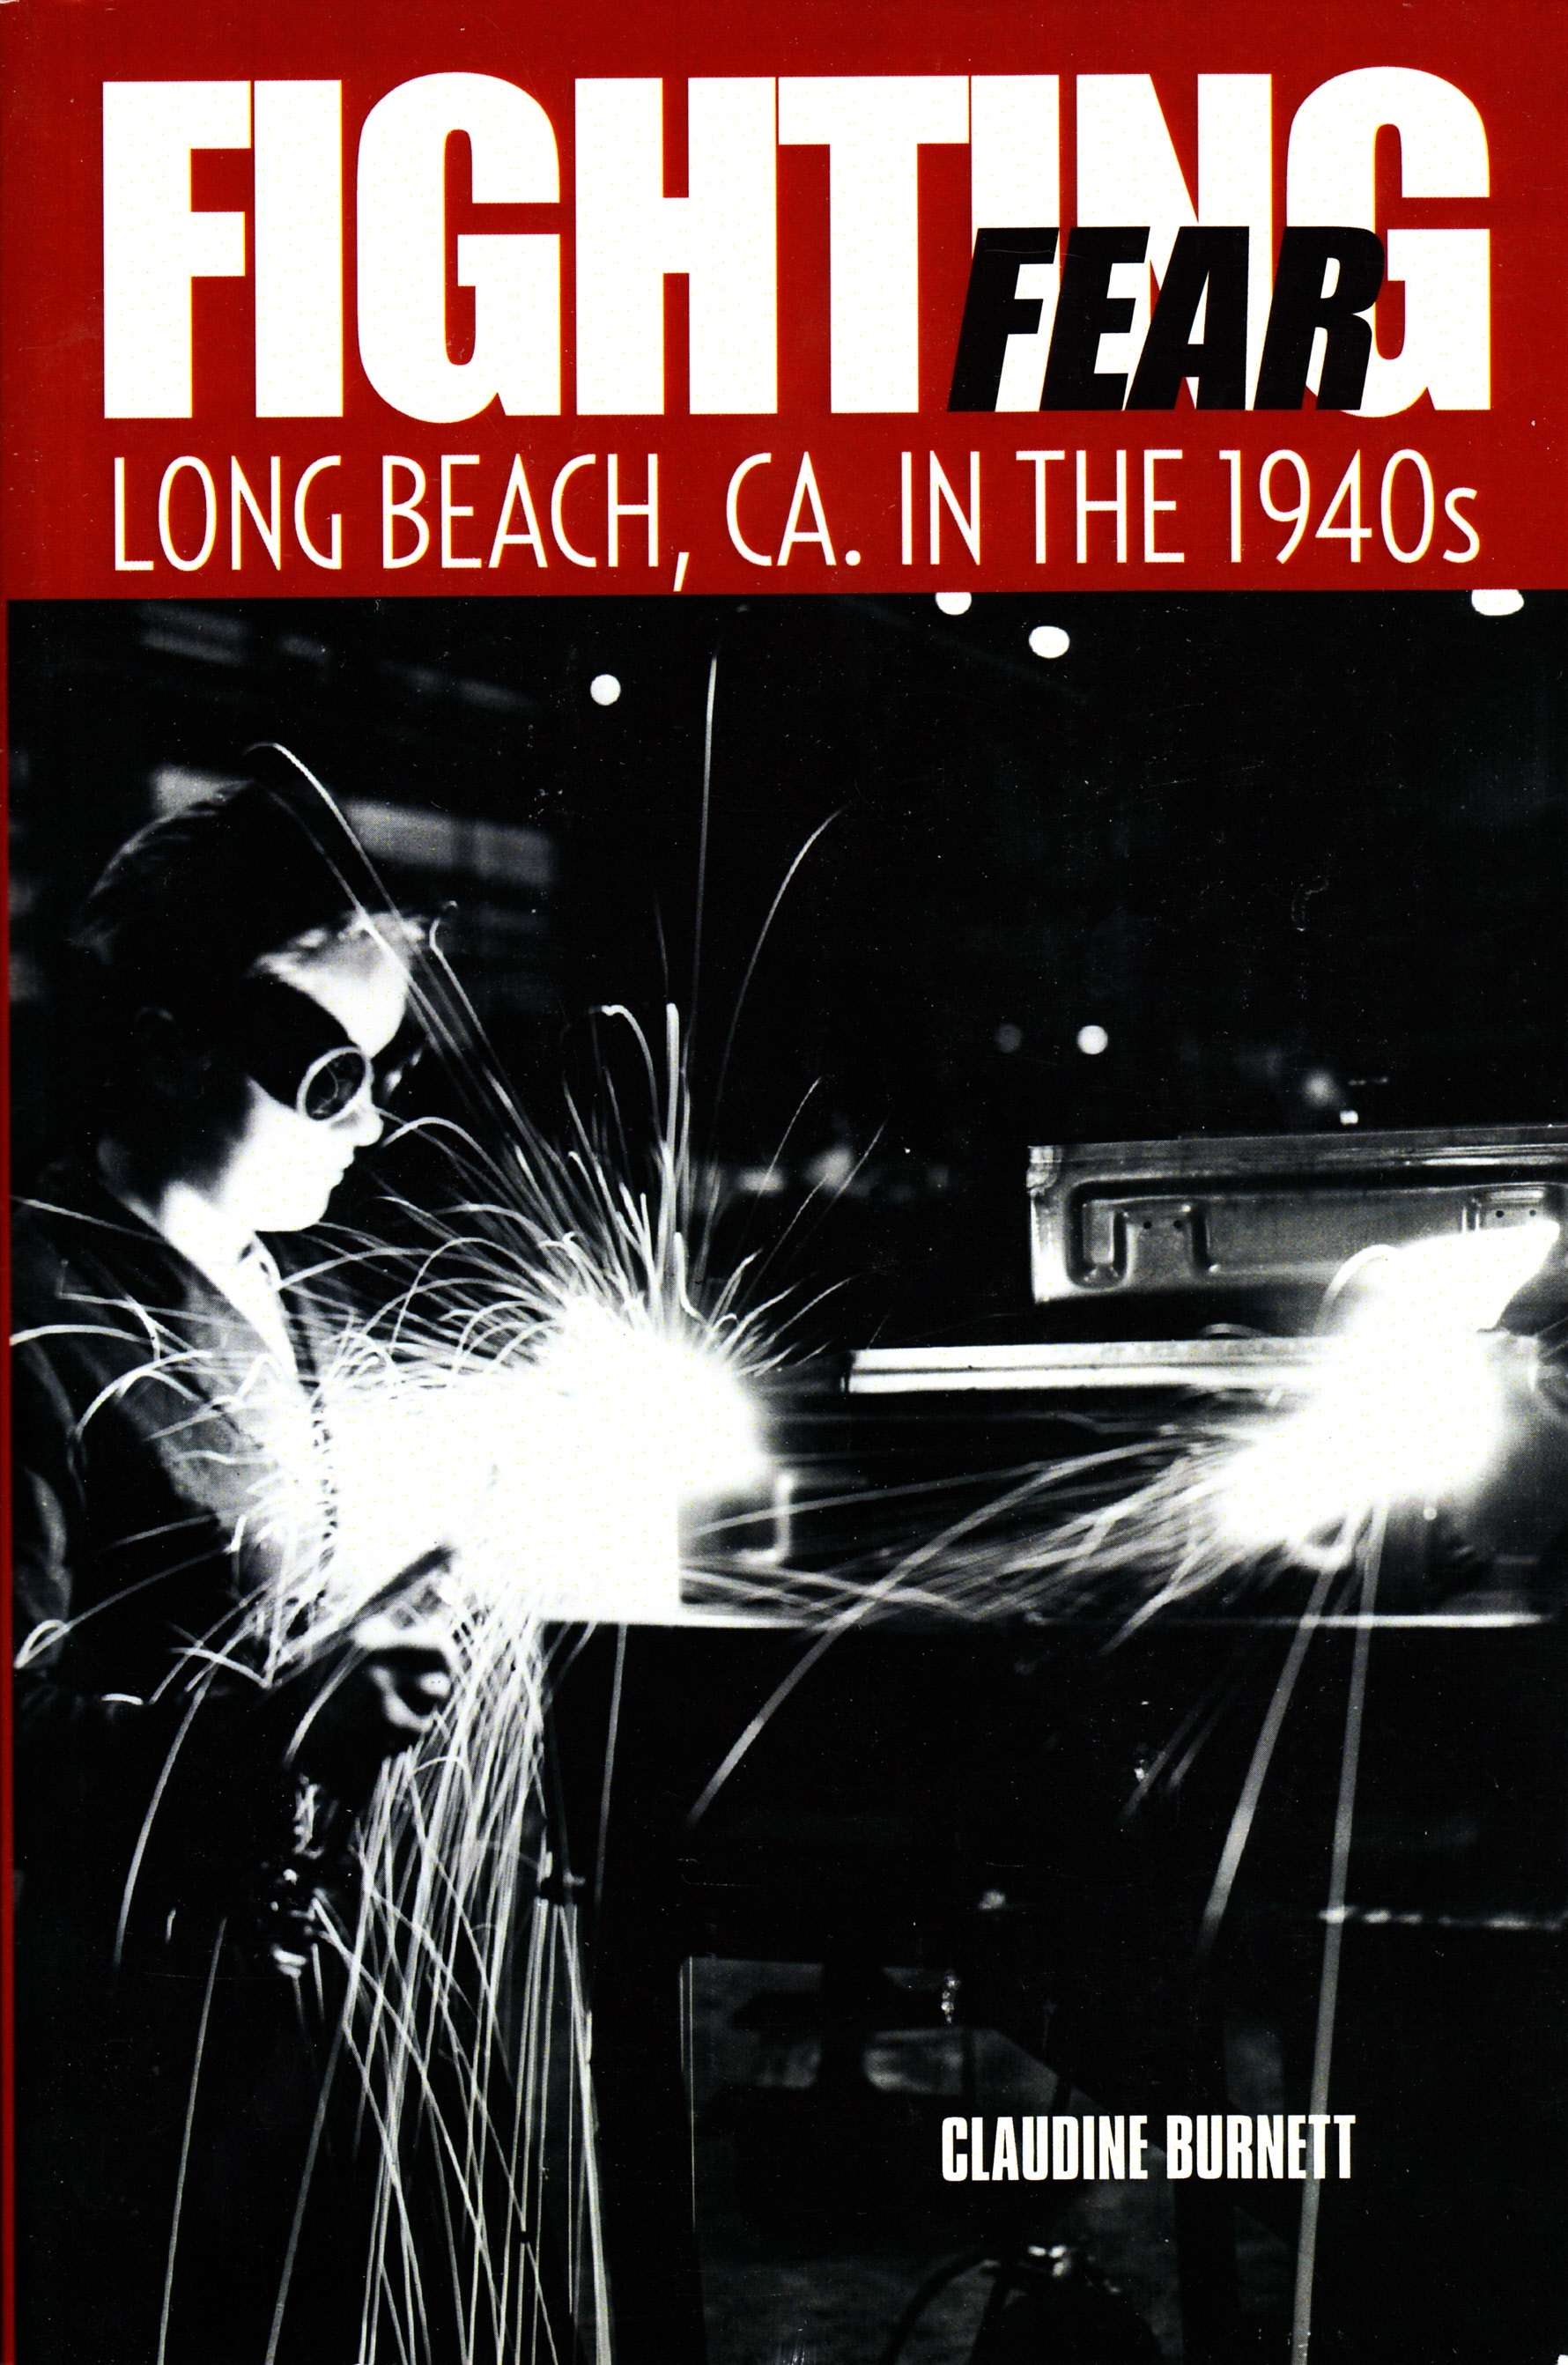 Fighting Fear in long beach Ca, in the 1940s